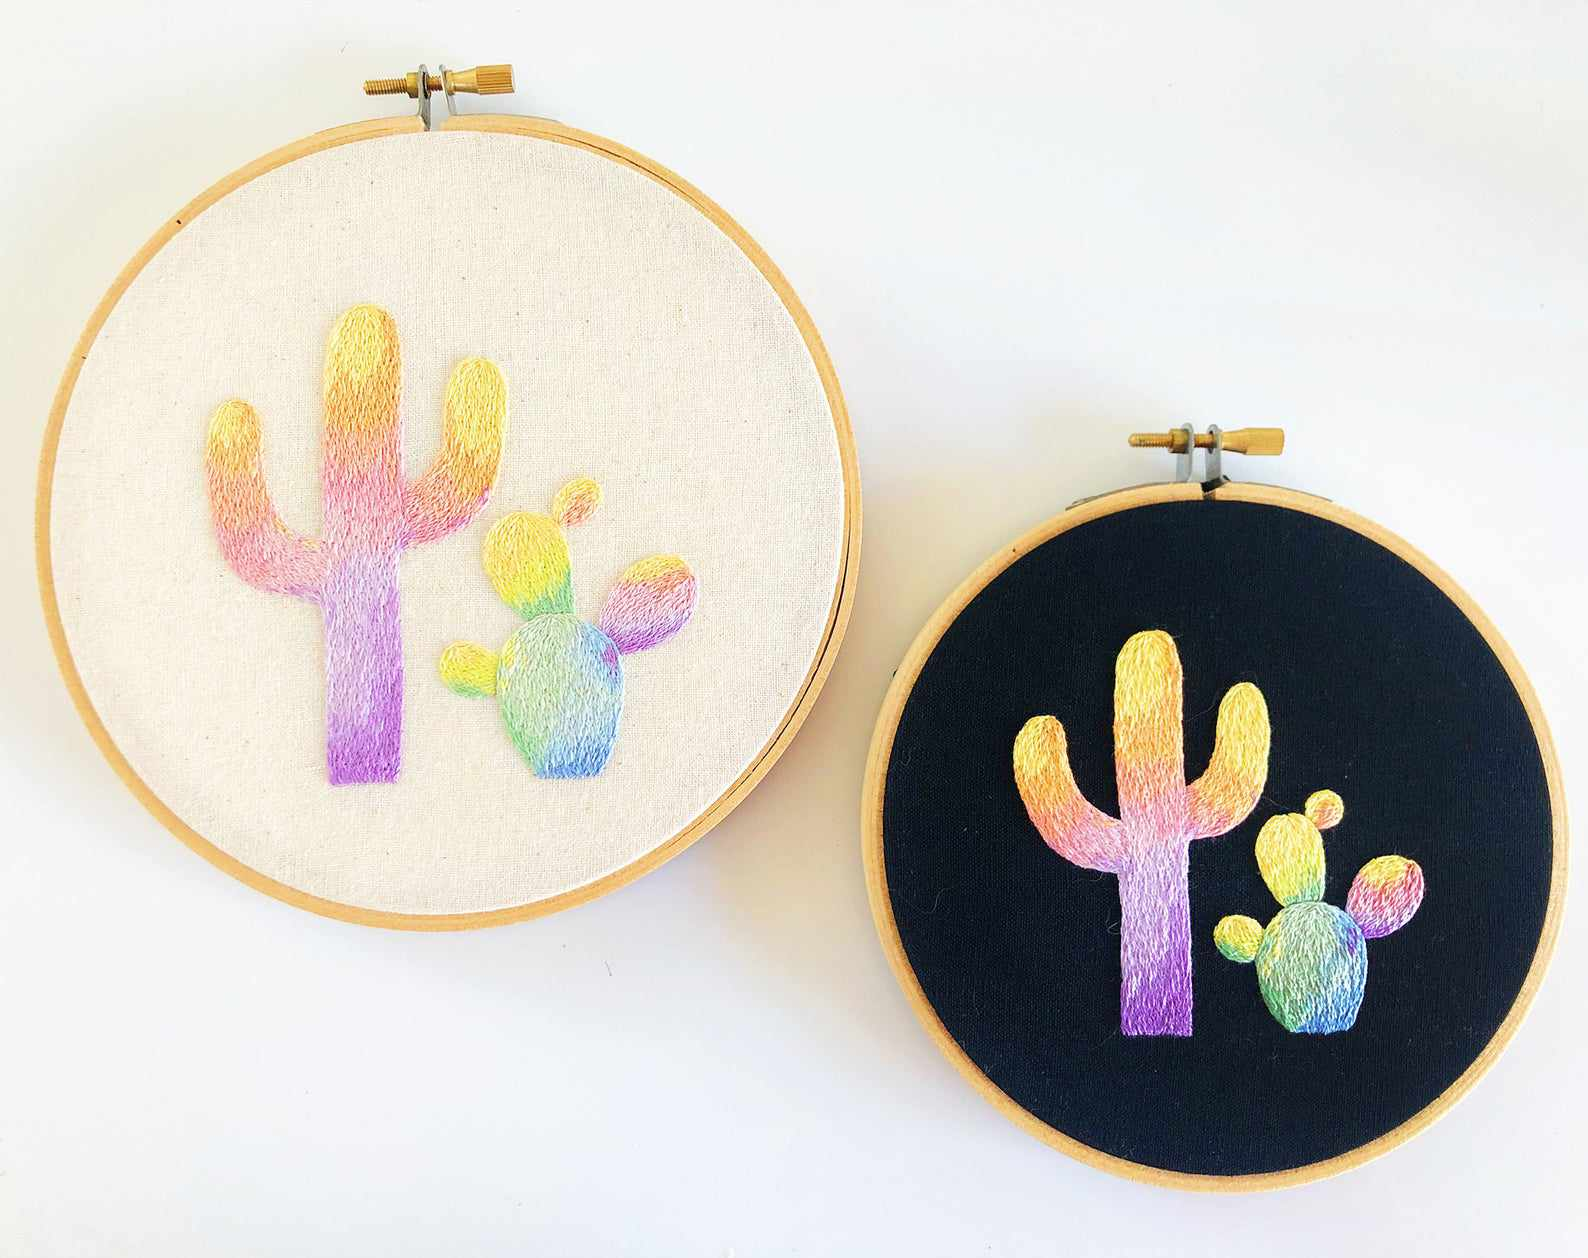 Rainbow Cactus Embroidery Pattern